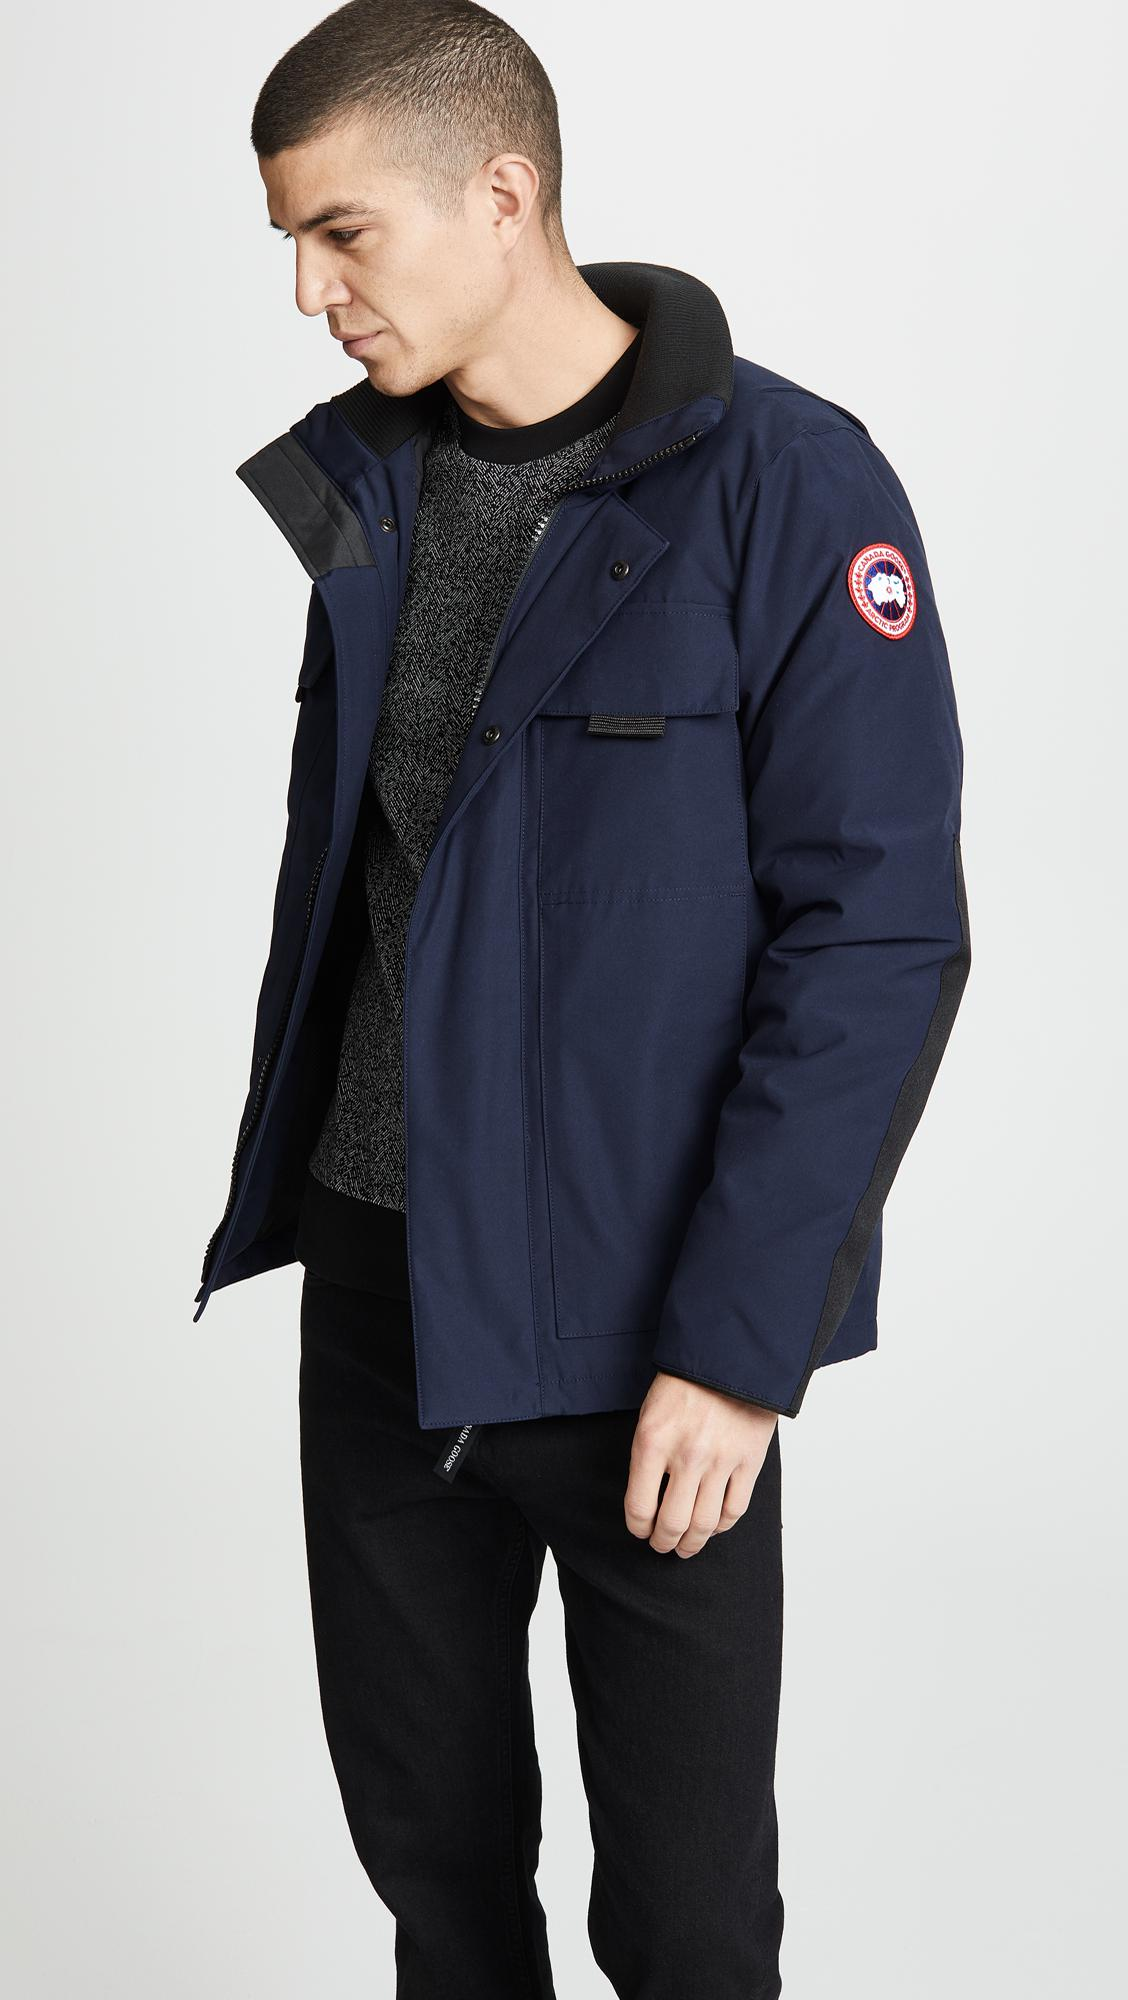 c4ce9674f3d11 Canada Goose Forester Jacket in Blue for Men - Save 19% - Lyst